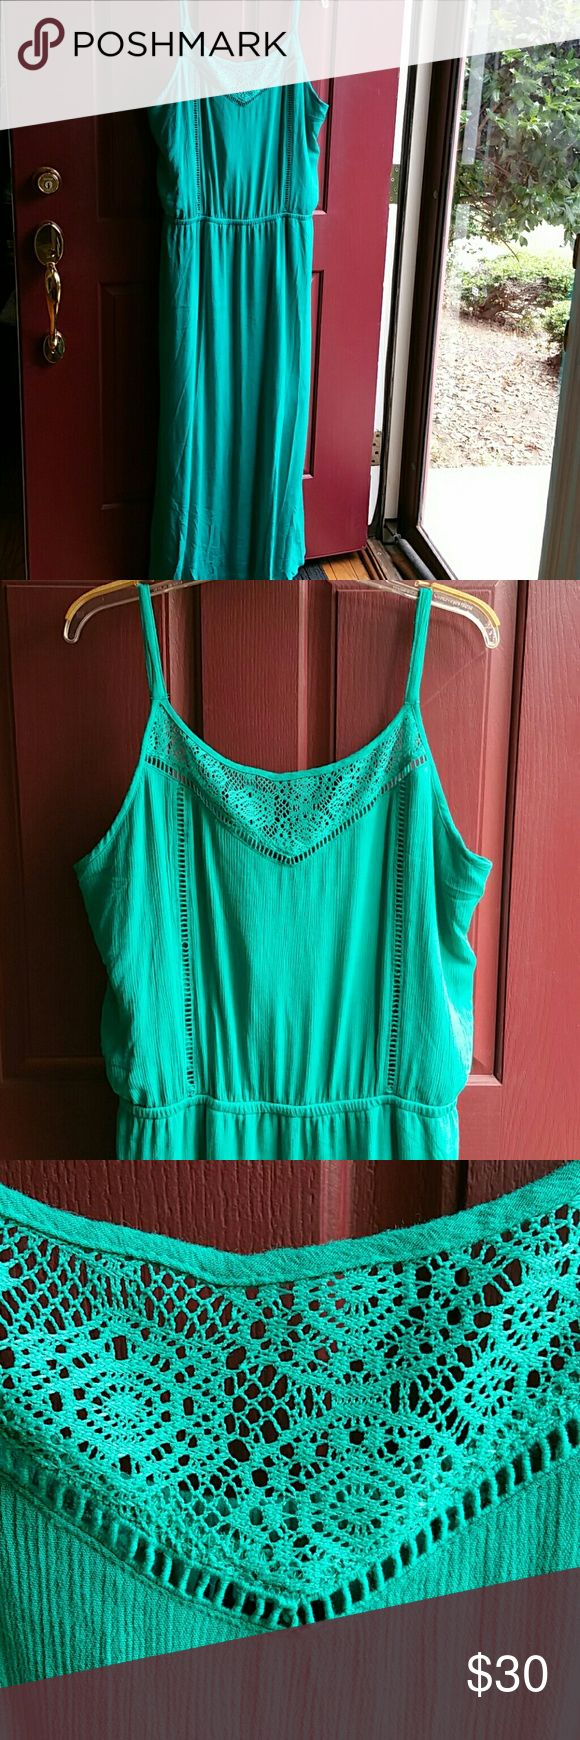 BOGO Turquoise Maxi Dress NWT Buy One Item and Get ONE Item FREE. FREE items same value or LESS  Very Simple....  BUNDLE BOTH ITEMS AND OFFER ME THE PRICE OF THE MOST EXPENSIVE....  Excludes Mannequins... Rue+ Dresses Maxi